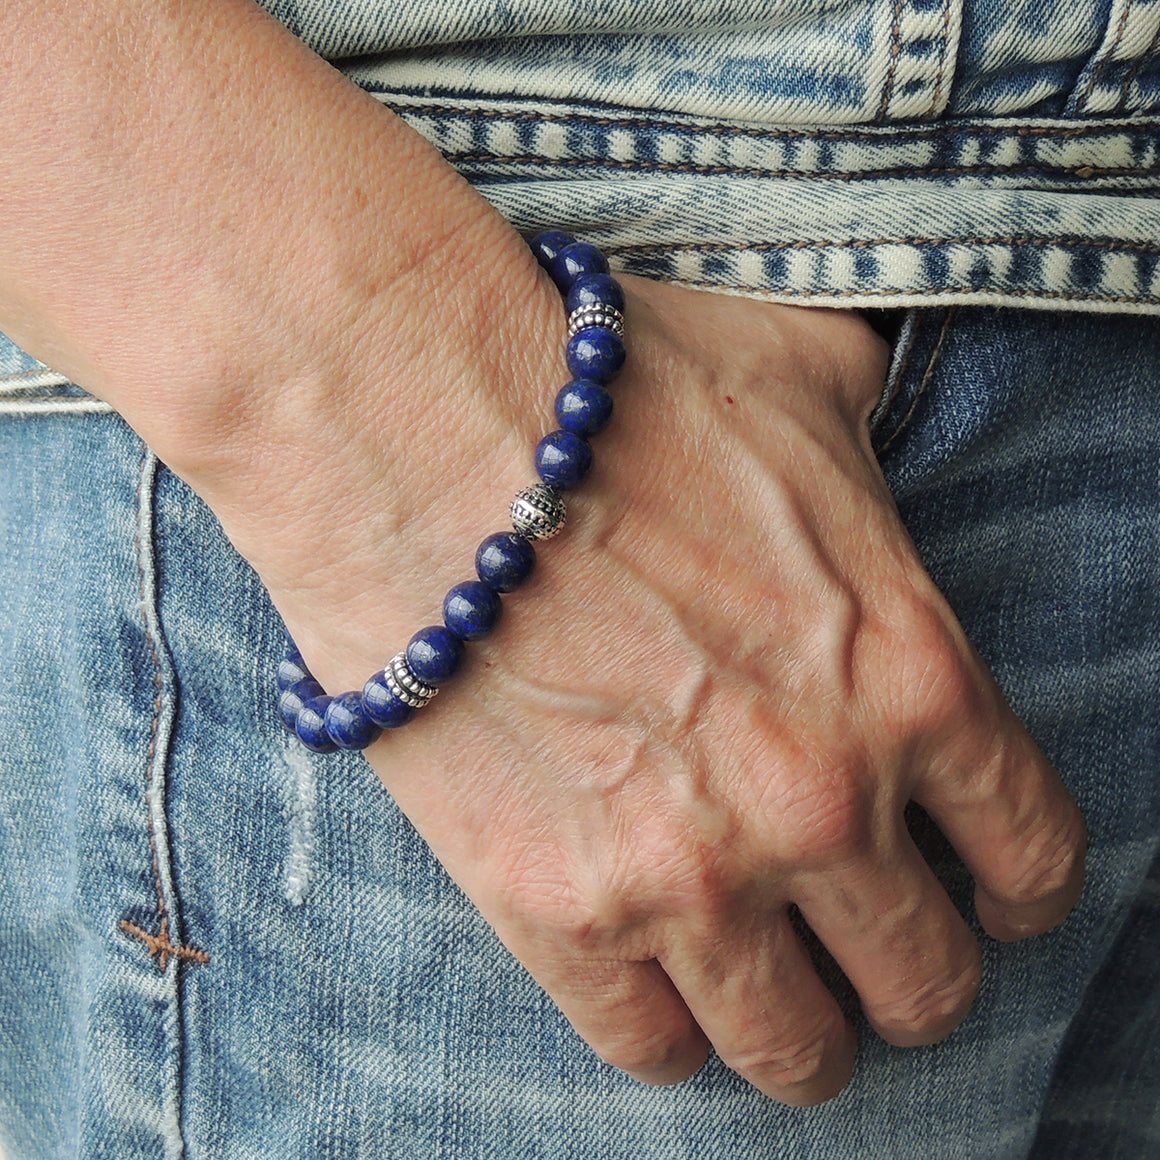 Yoga Pilates Energy Stamina Bracelet with Healing High Grade Lapis Lazuli 8mm Gemstones & Genuine S925 Sterling Silver Energy Beads, Clasp, Chain - BR1503